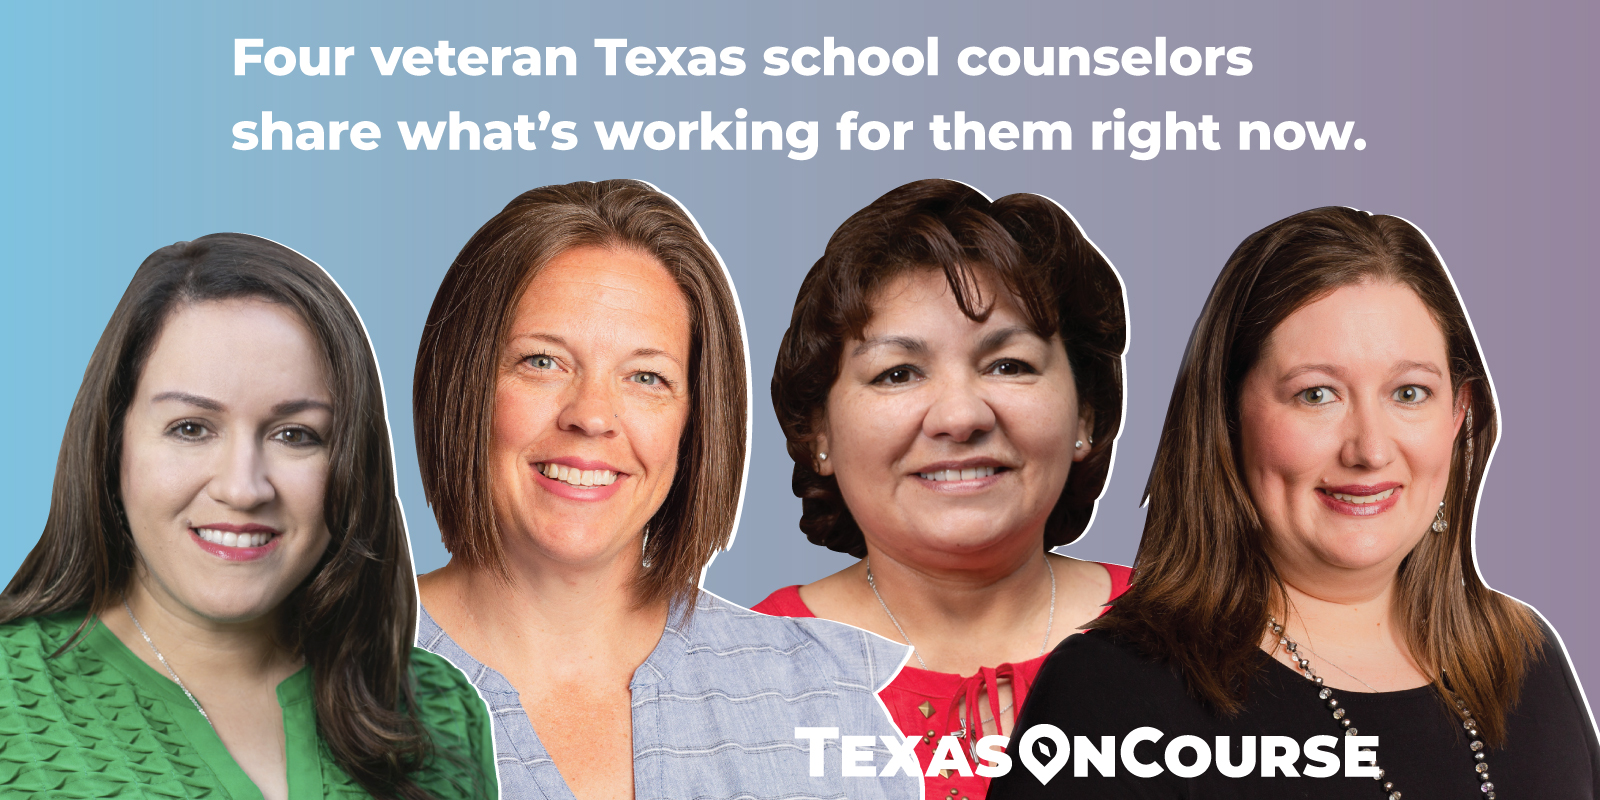 Four veteran Texas school counselors share what's working for them right now.